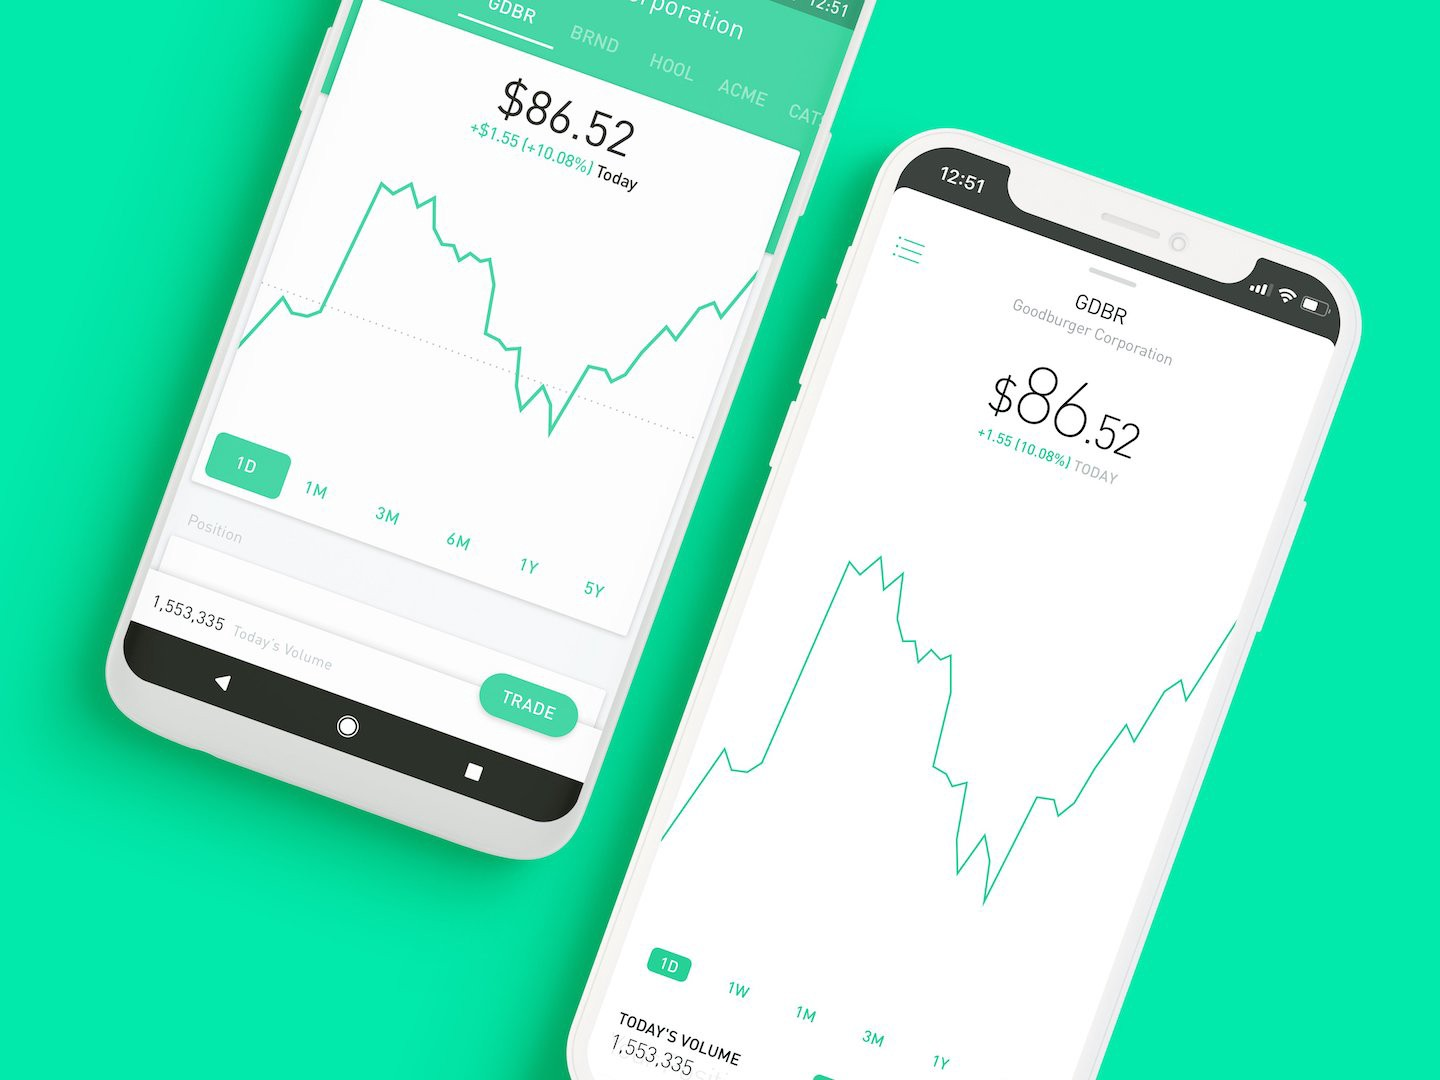 Commission-Free Investing Robinhood  Work Coupons July 2020